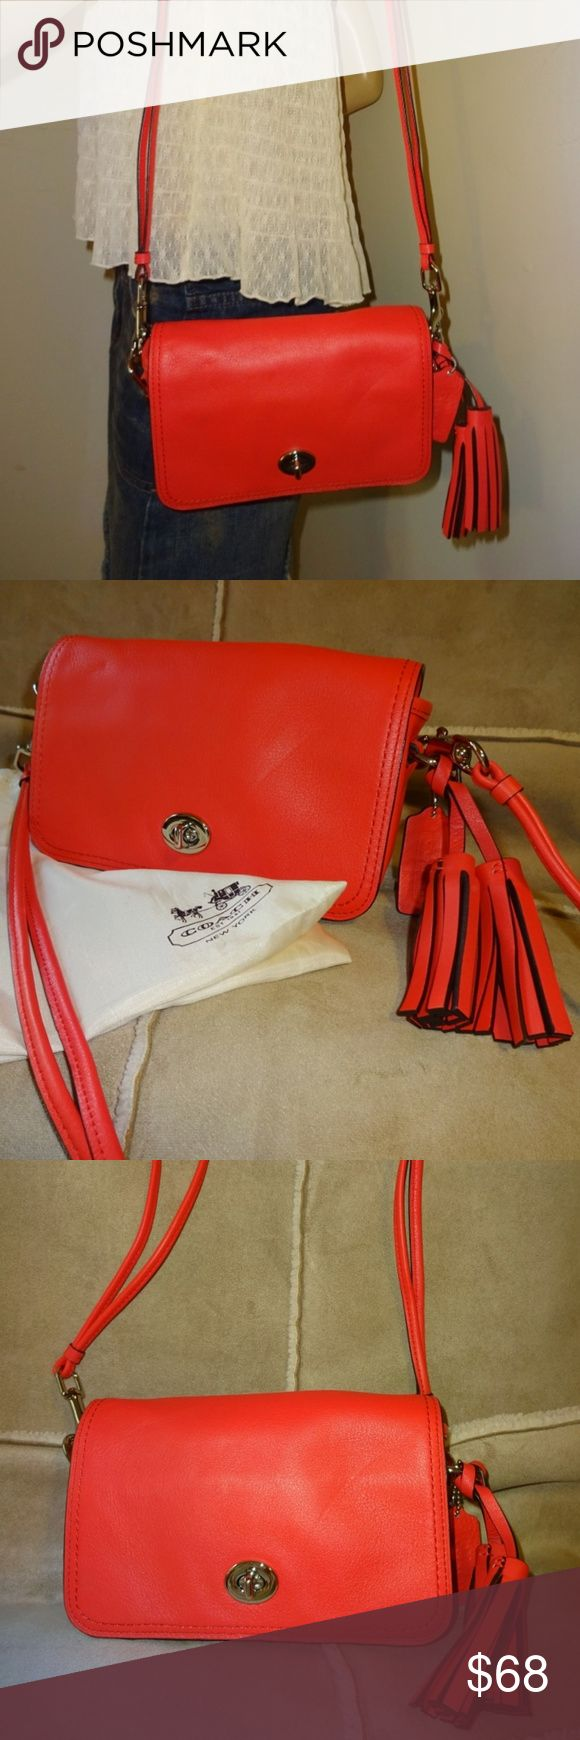 """Coach Legacy Turn Lock Penny Flap X-Body COACH LEGACY ~  Exquisite eye-popping color on this cute LEGACY Penny turn lock flap handbag! Crafted from genuine leather, with shiny silver hardware and black outline edgepaint trim. Features  - Double strand """"spaghetti"""" straps drop 22.5"""" - Leather lozenge signature hang tag - Wrap around leather tassels - Full front flap with turn lock closure - Front slip pocket - Beige cloth lining - Interior slip pocket - Leather creed w/serial no. K1271-19914…"""